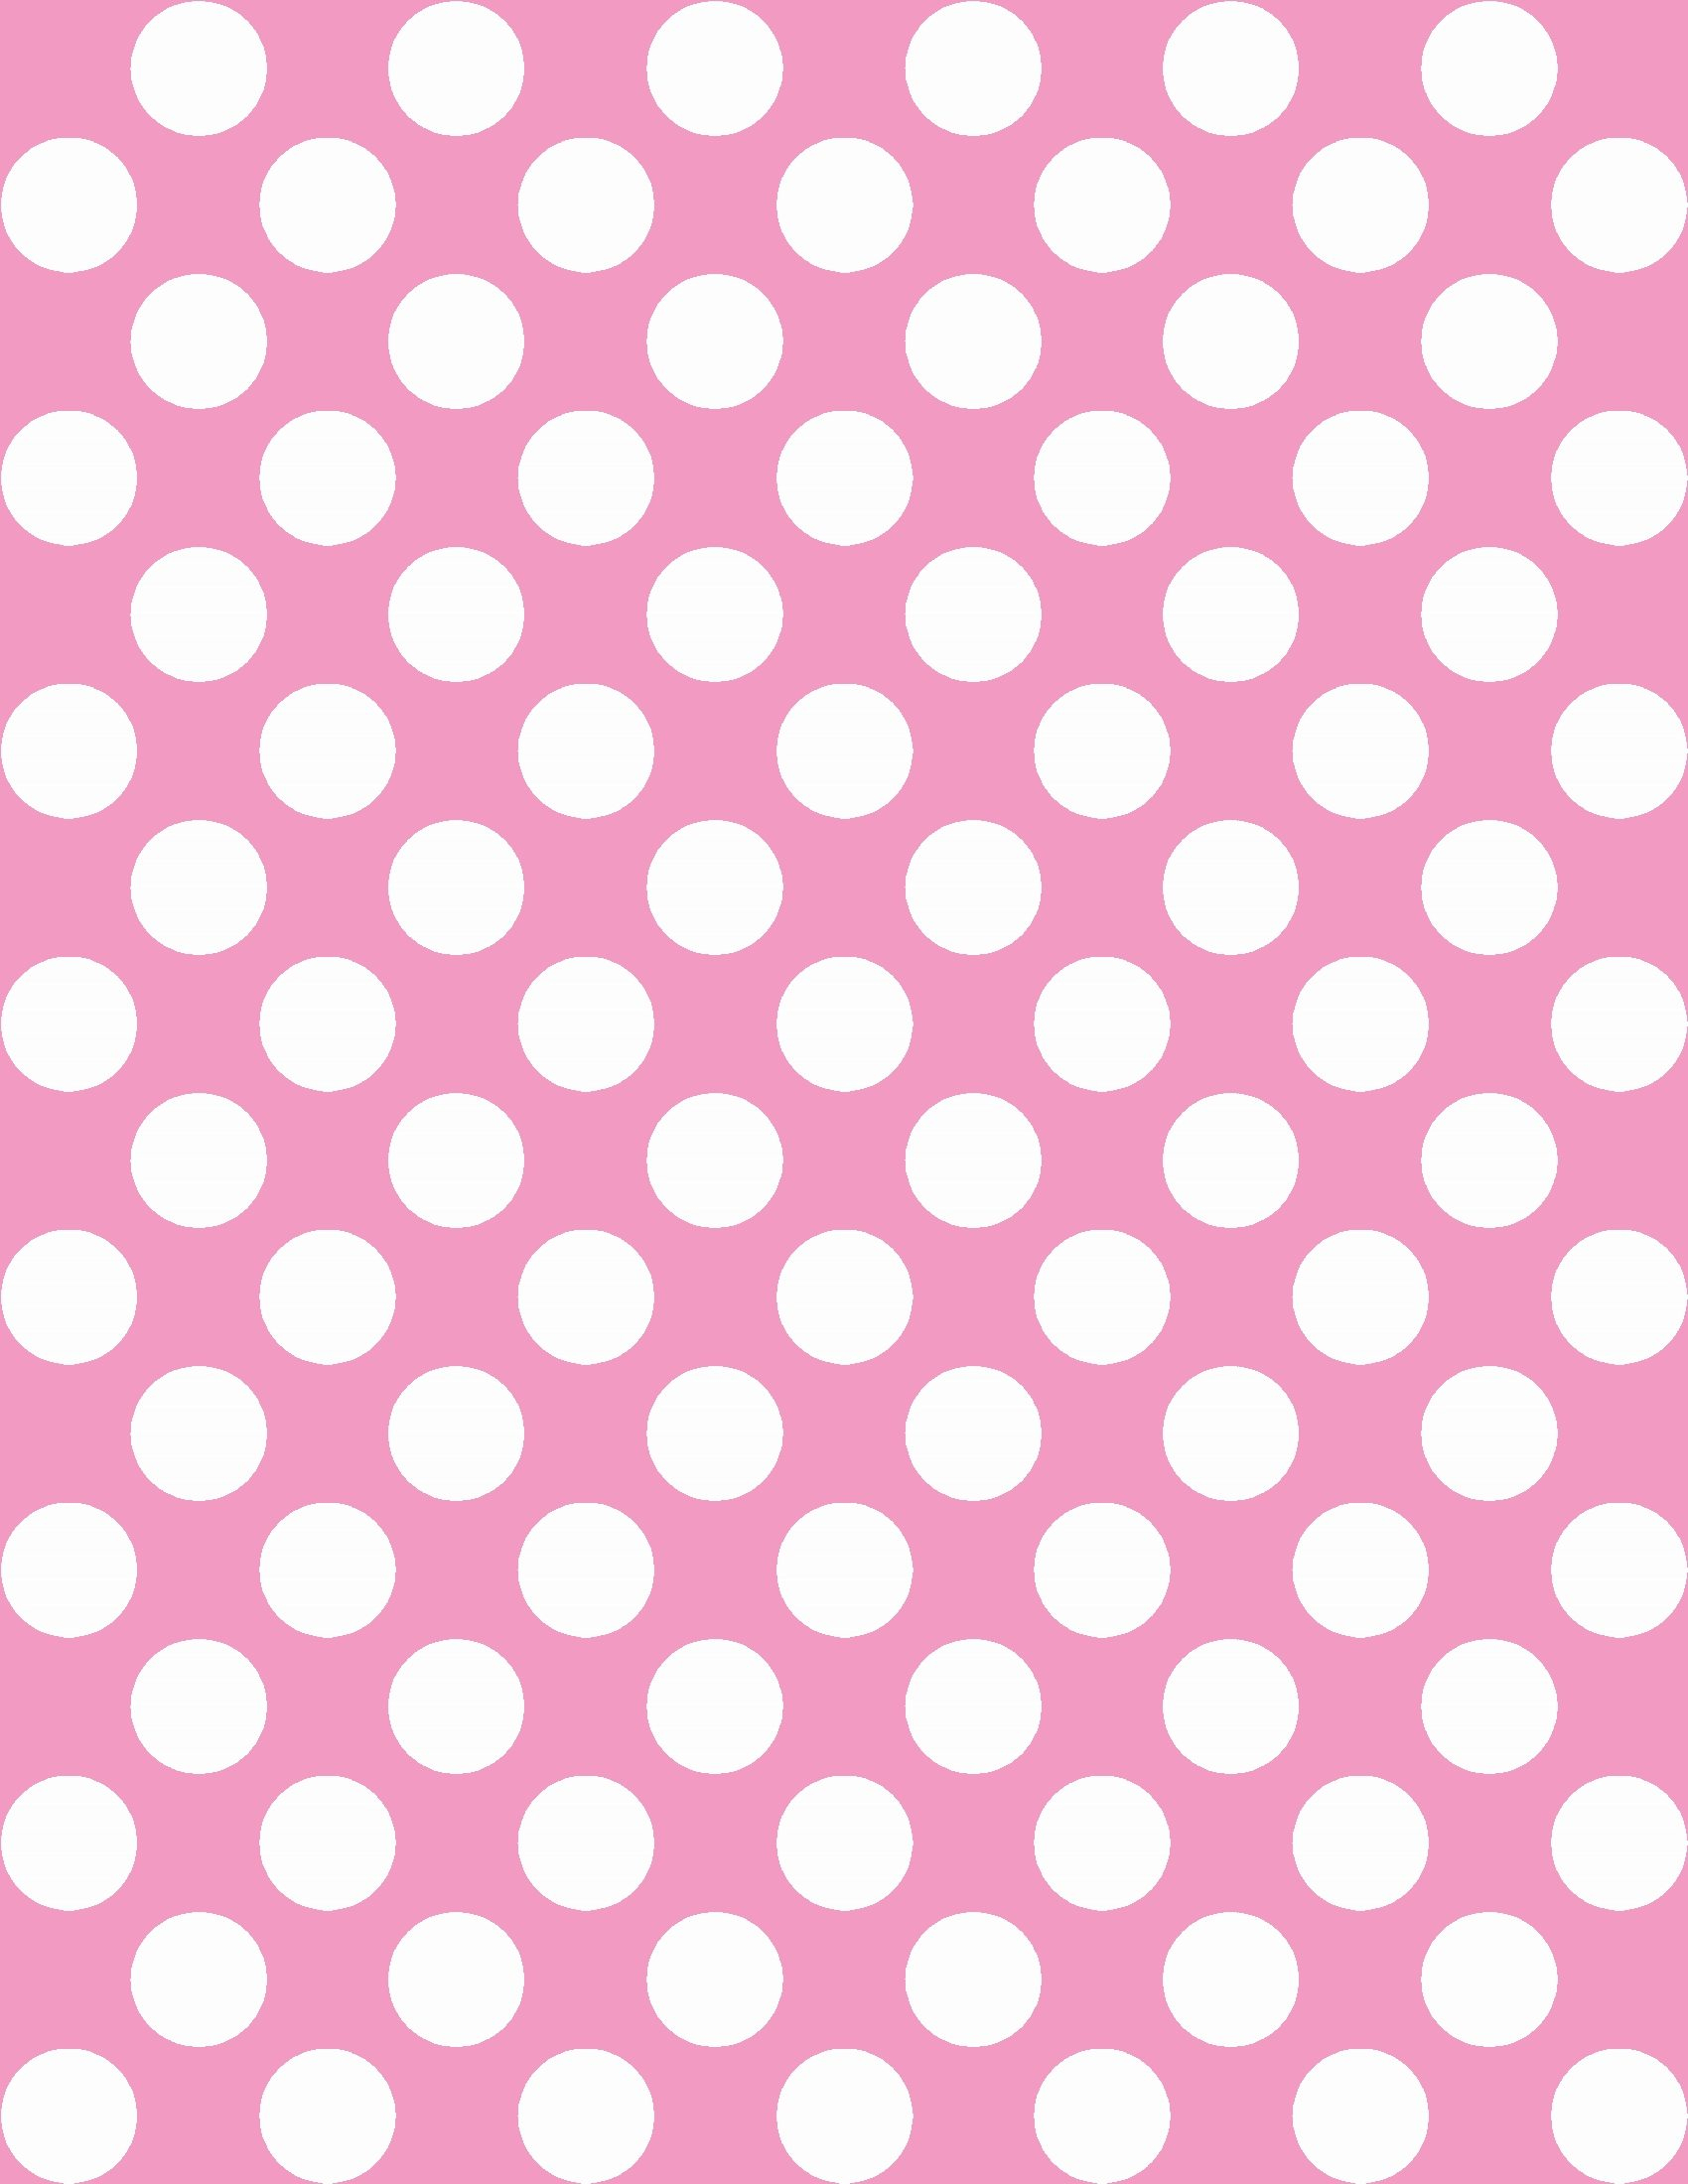 Free Polka Dot Background In Any Color | Instant Download - Free Printable Pink Polka Dot Paper